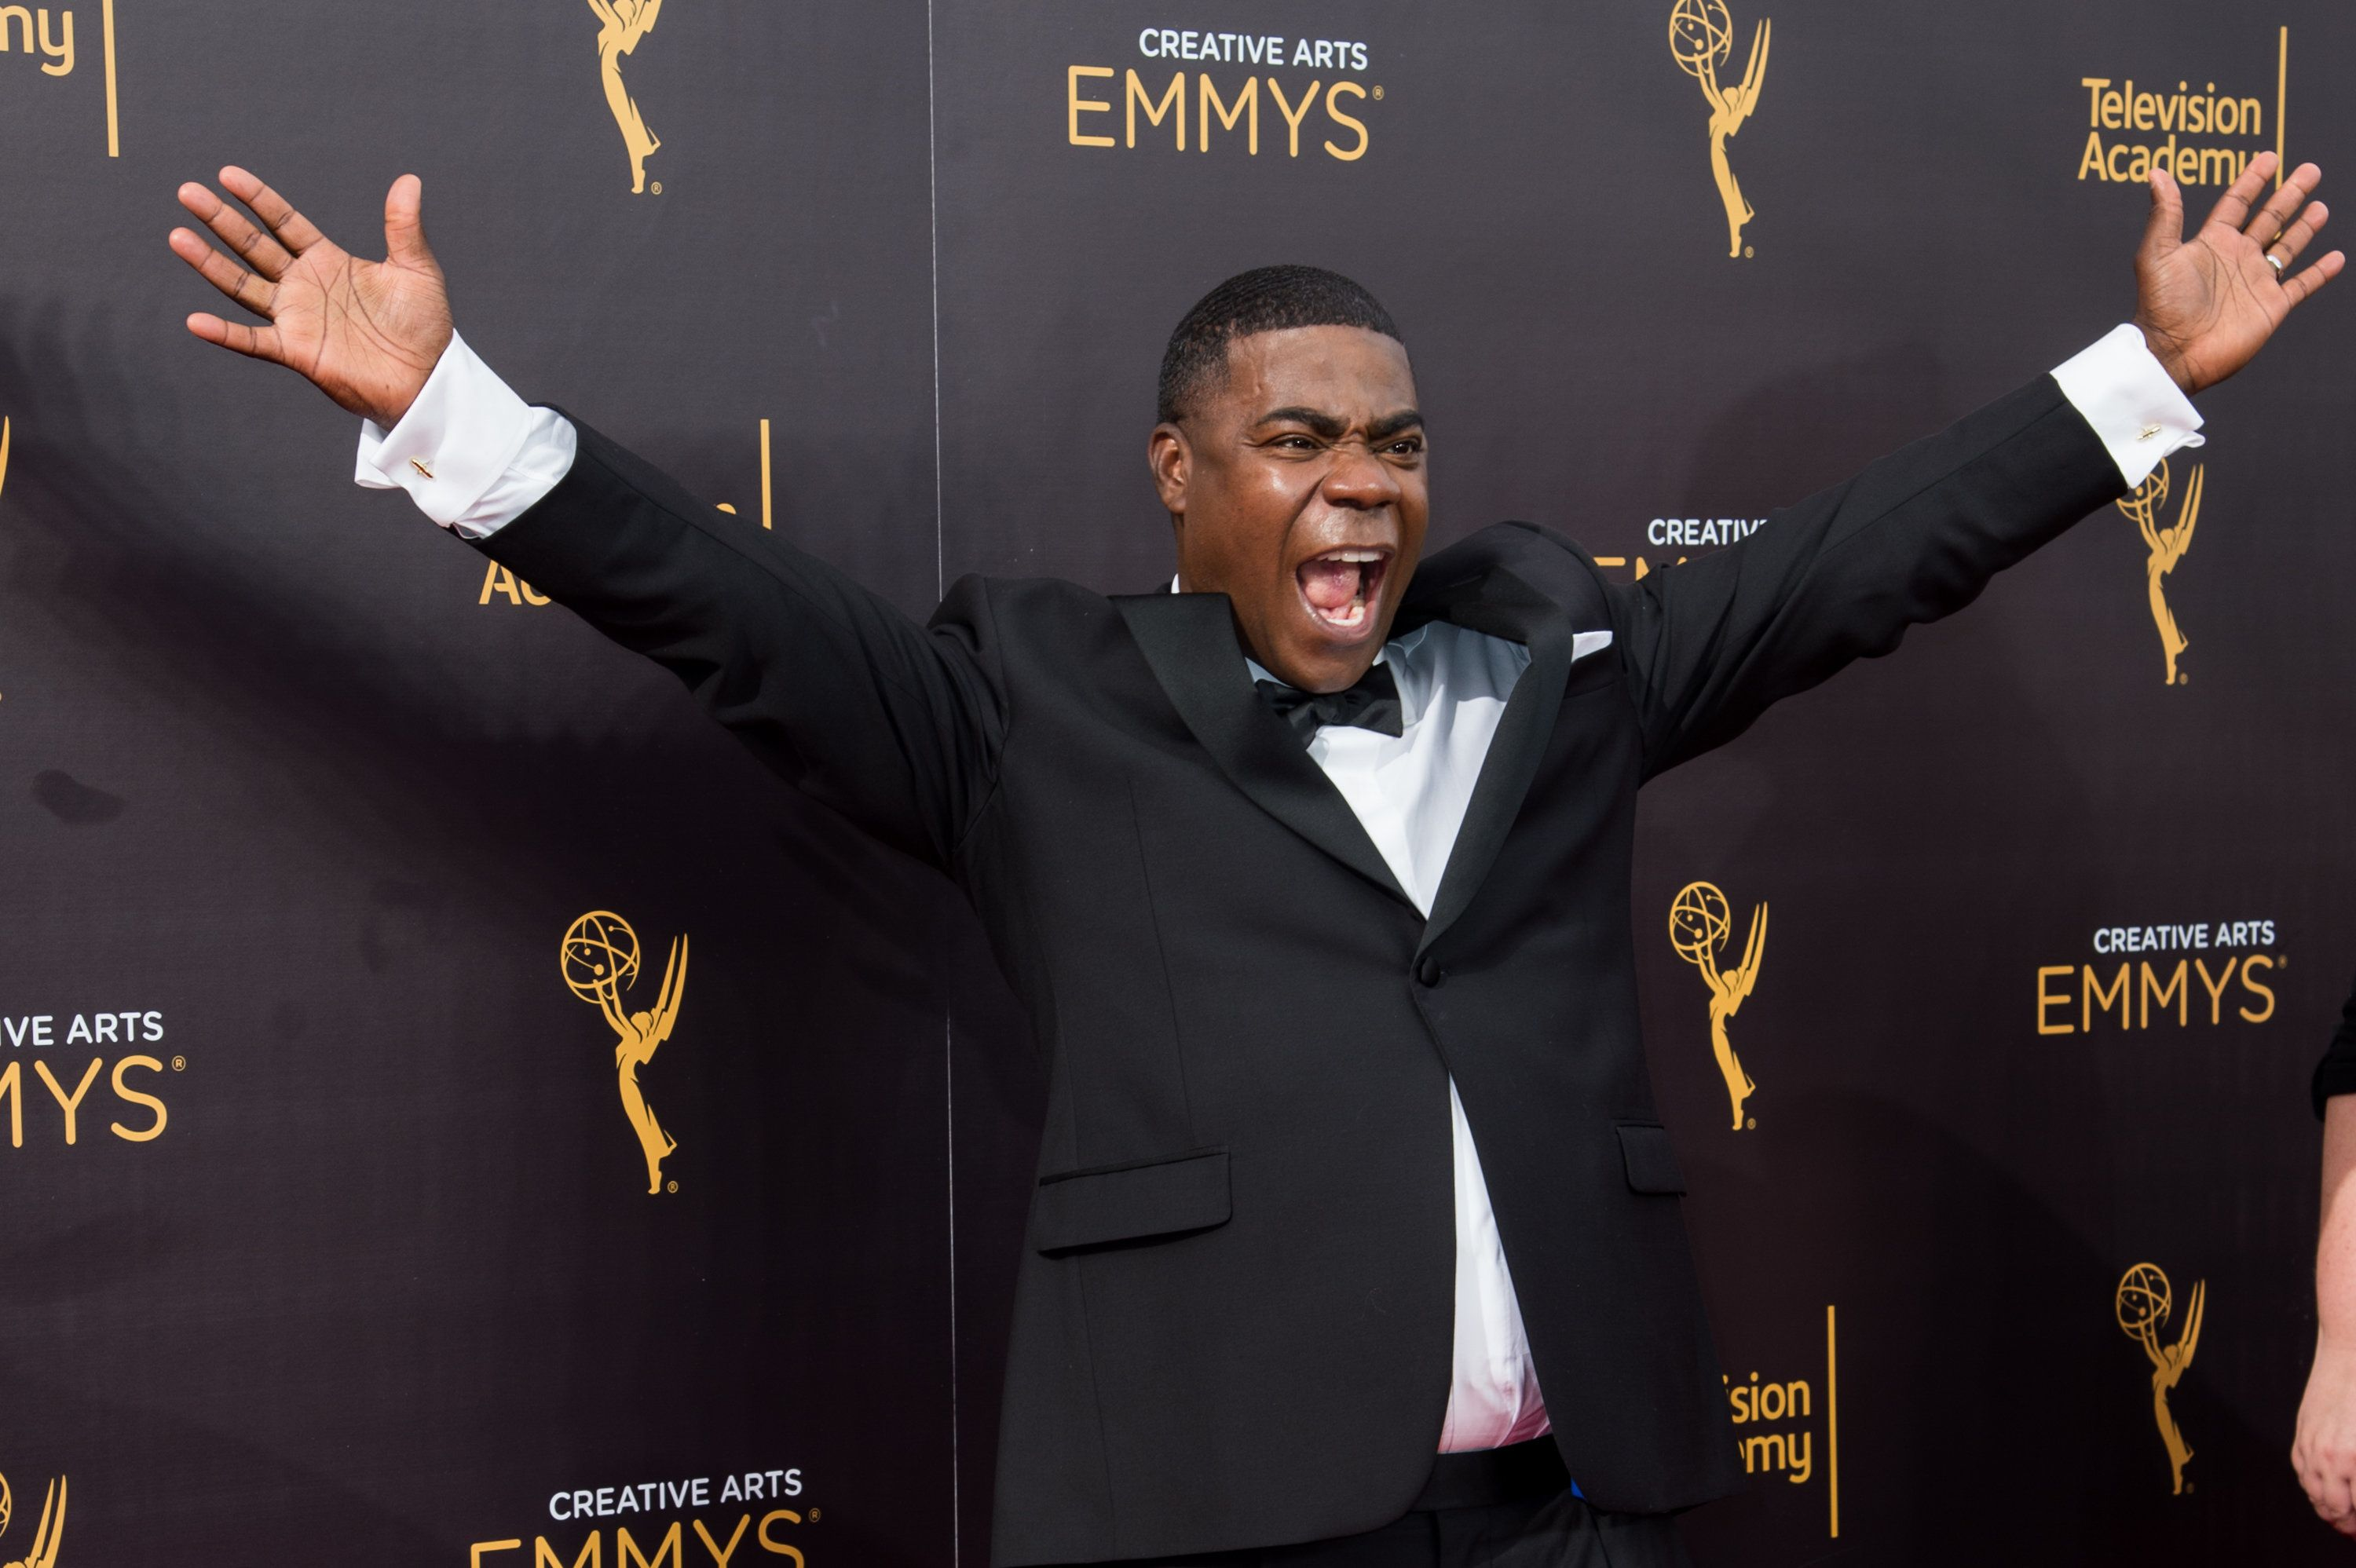 LOS ANGELES, CA - SEPTEMBER 10:  Actor Tracy Morgan arrives at the 2016 Creative Arts Emmy Awards at Microsoft Theater on September 10, 2016 in Los Angeles, California.  (Photo by Emma McIntyre/Getty Images)